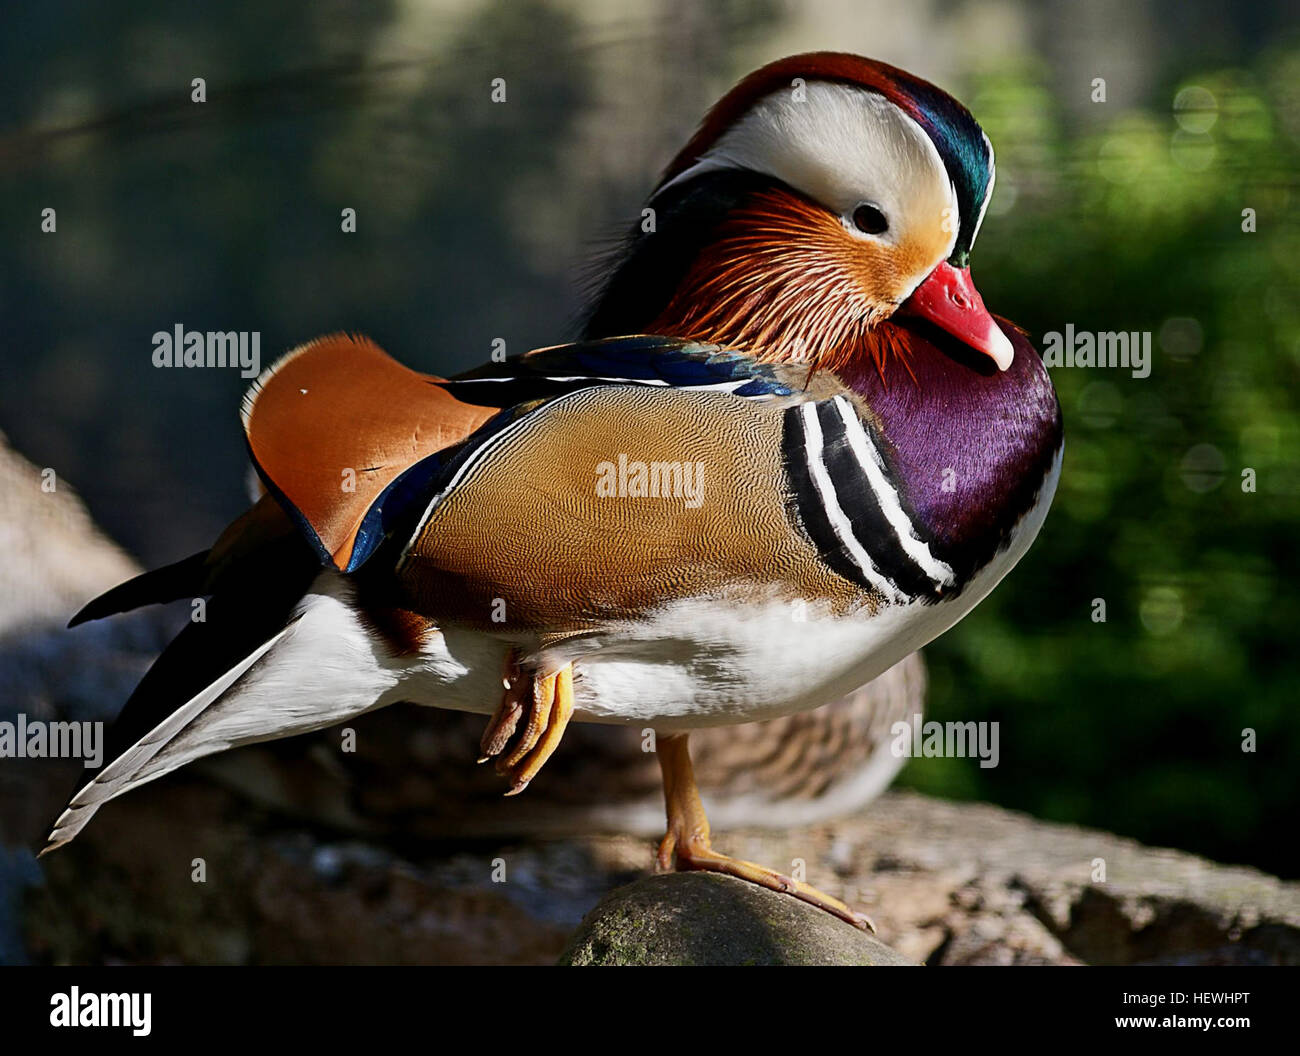 The Mandarin duck is a sexually dimorphic species, meaning males and females differ in appearance. The male has Stock Photo